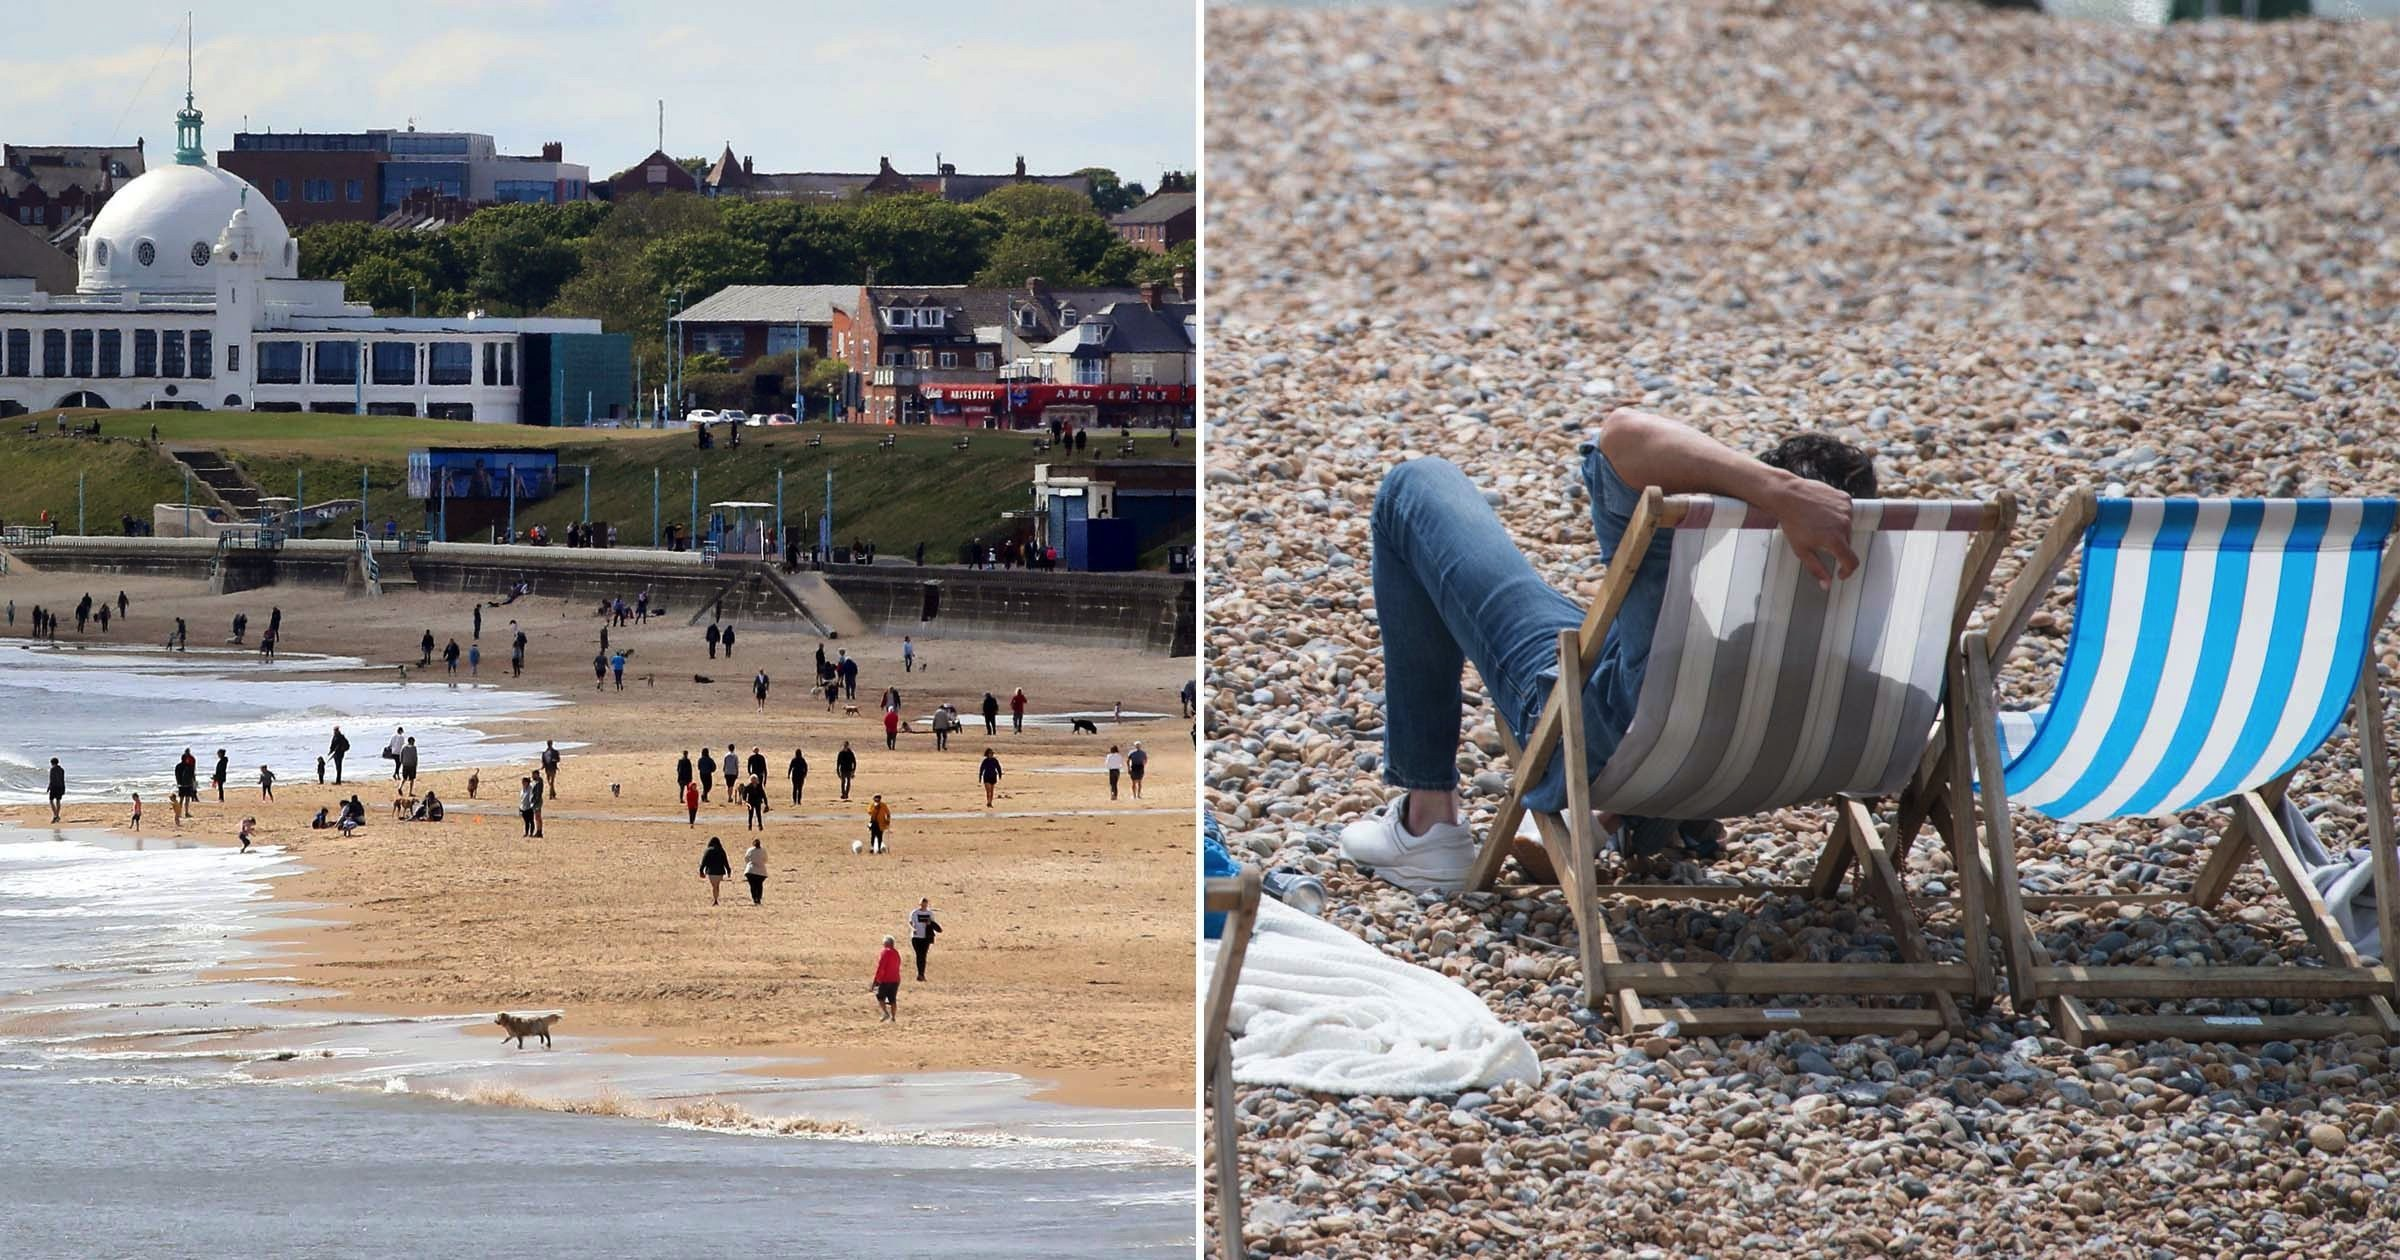 Brits head to beaches on hottest day since lockdown eased